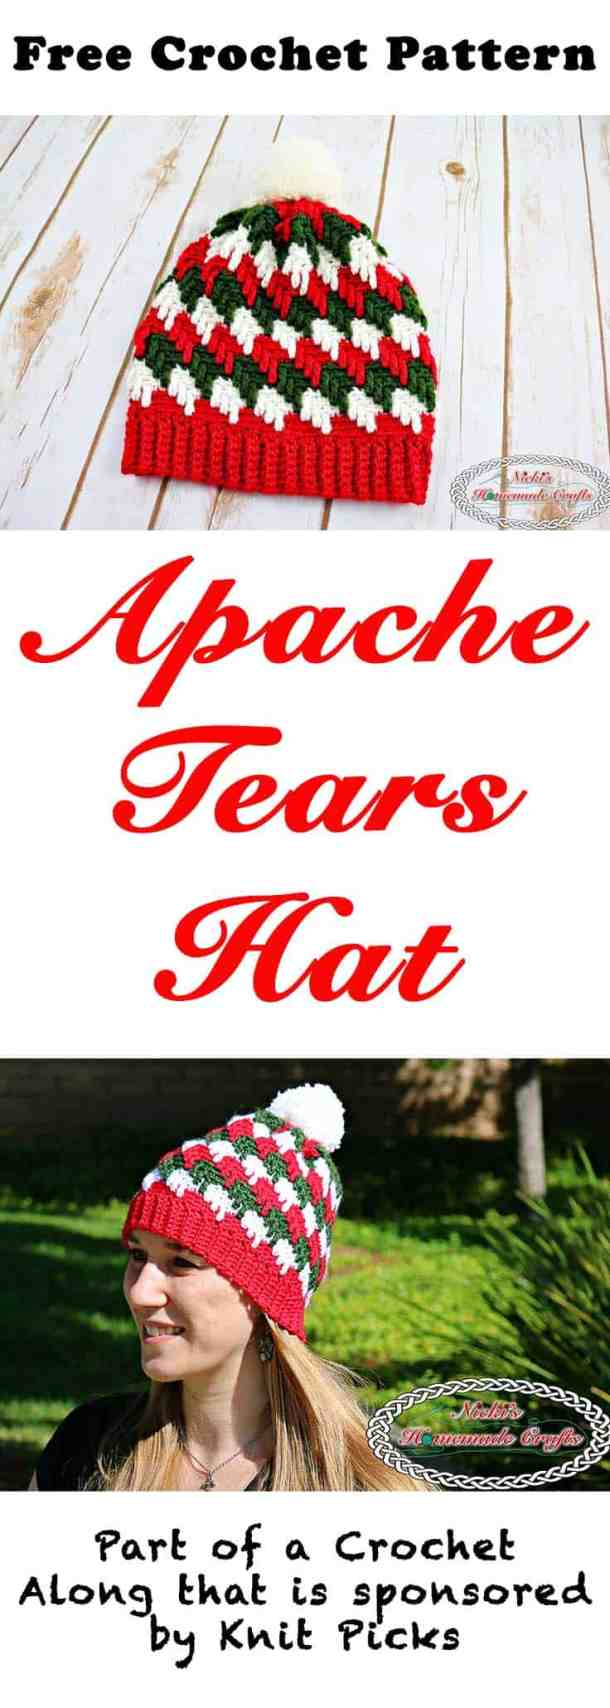 Apache Tears Hat - Free Crochet Pattern - Crochet Along by Nicki's Homemade Crafts #crochet #freecrochetpattern #hat #apachetears #crochetalong #knitpicks